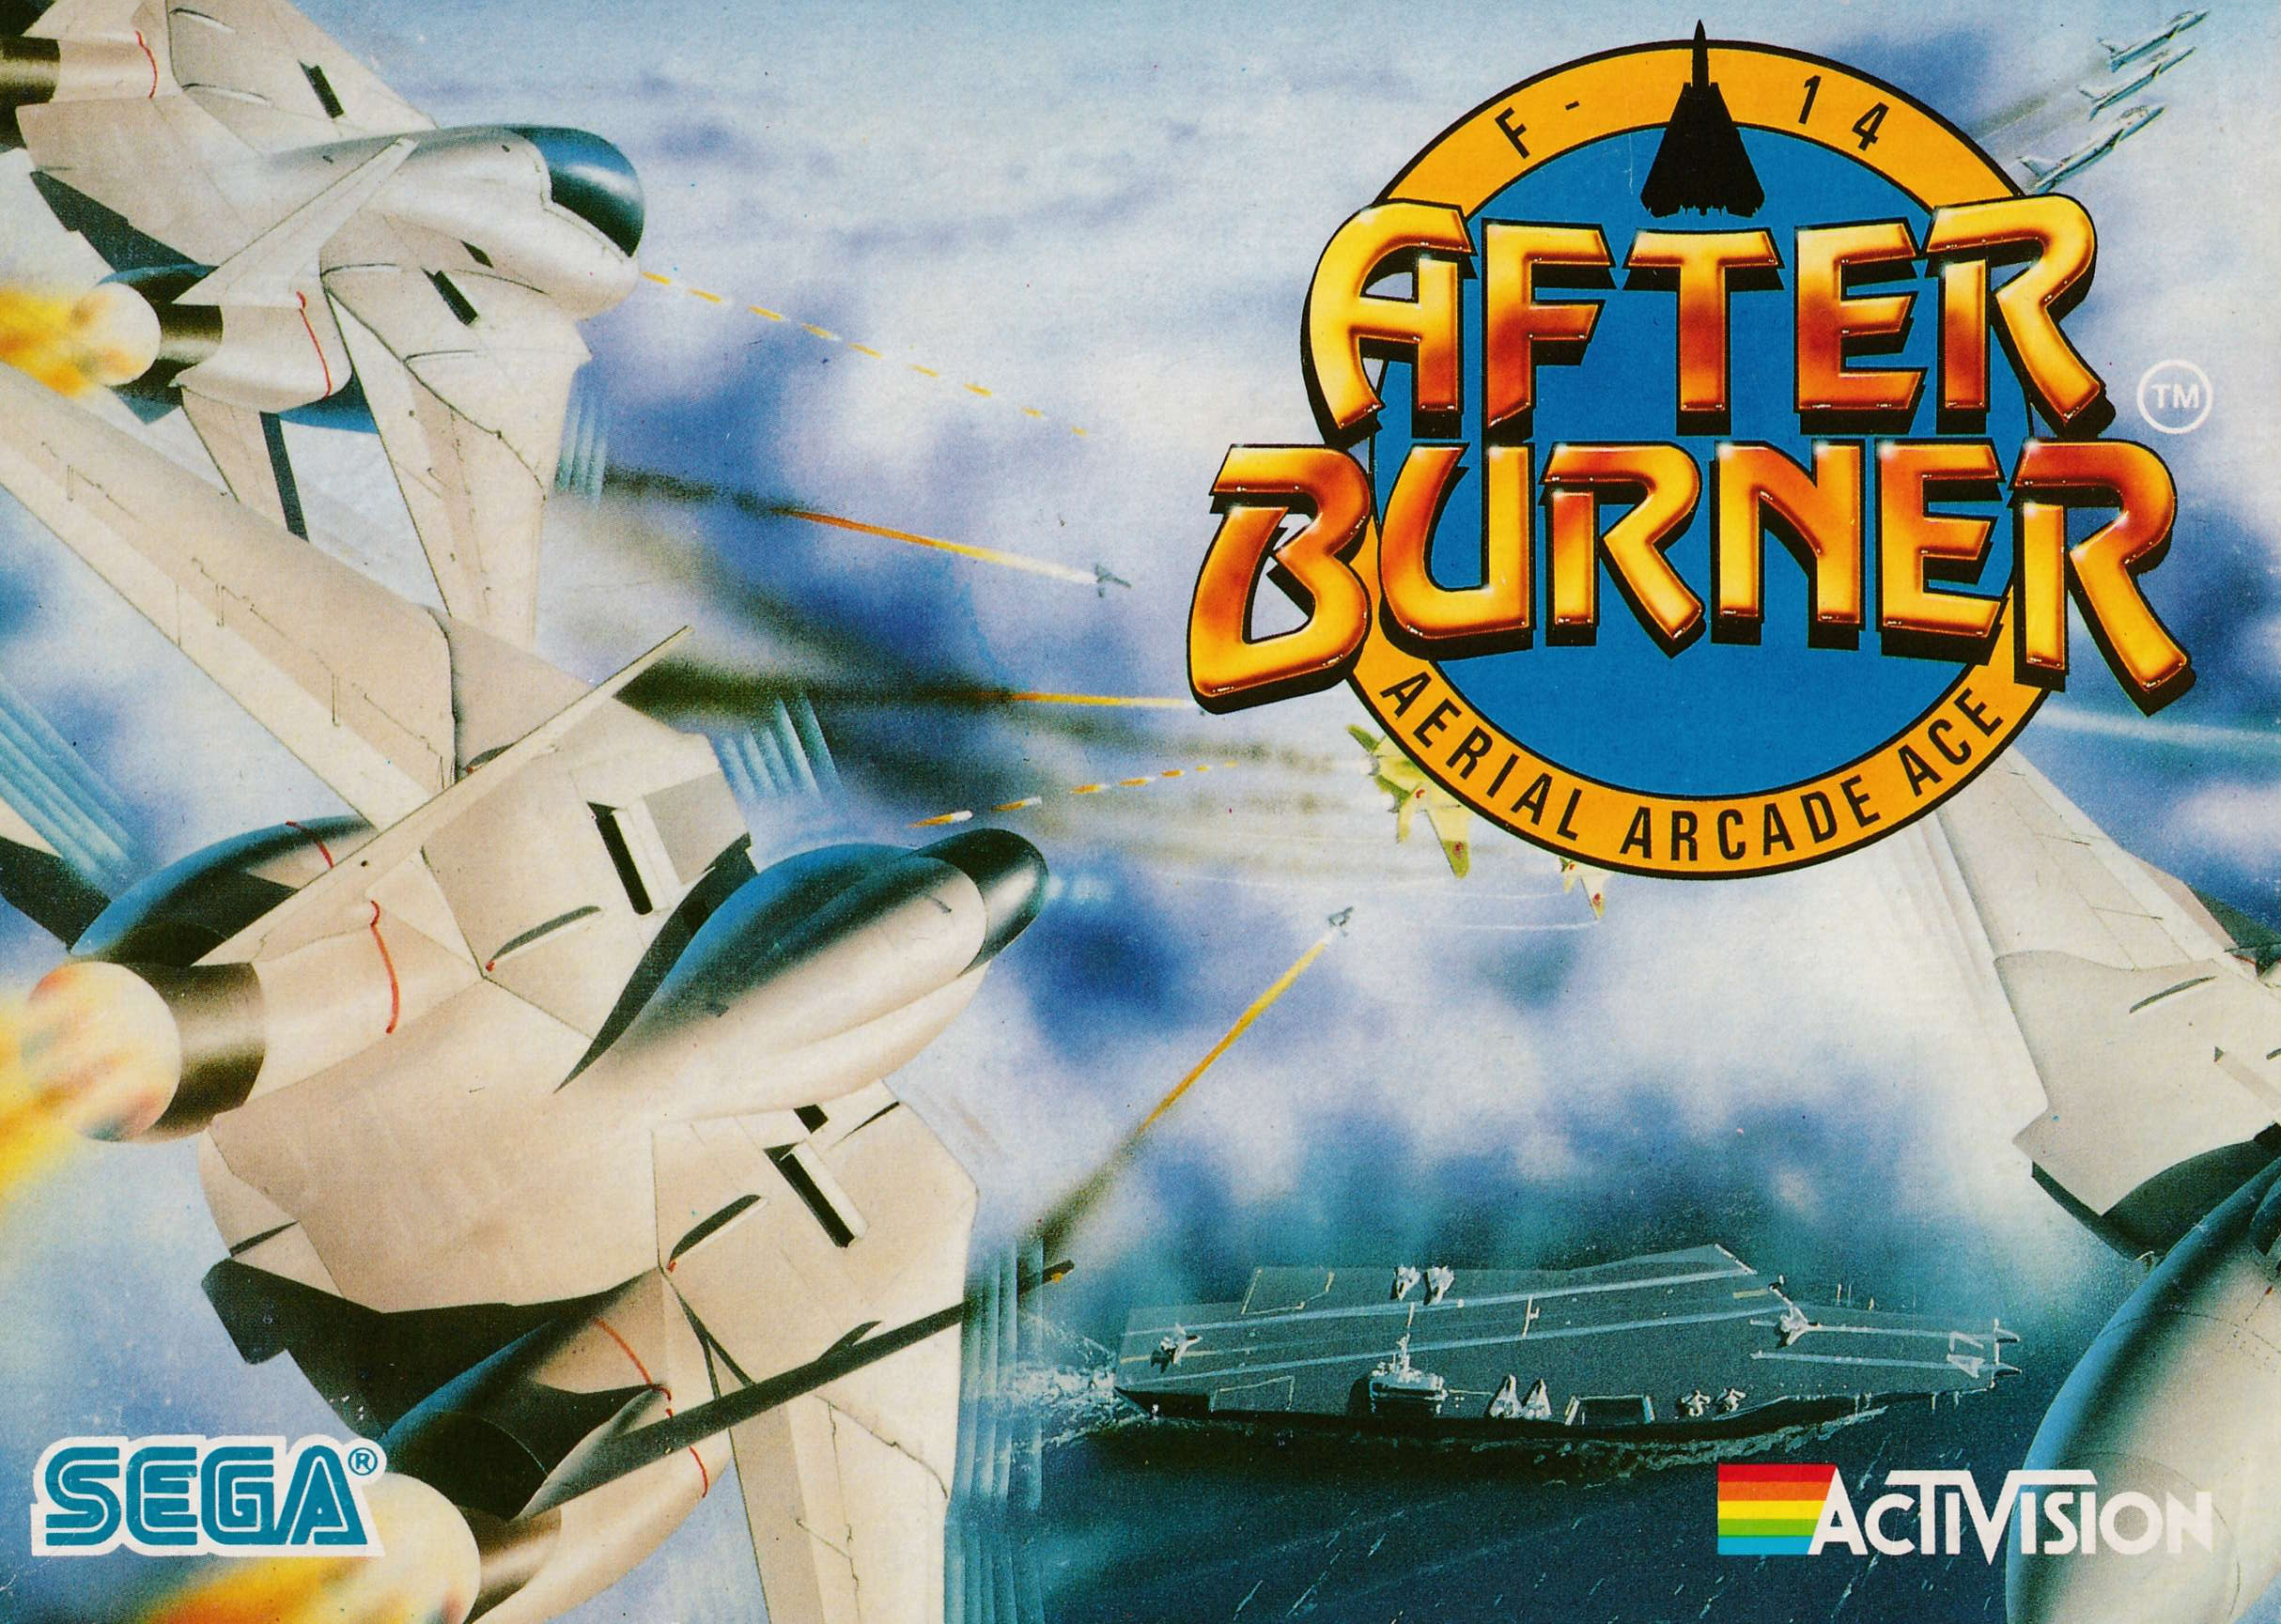 cover of the Amstrad CPC game After Burner  by GameBase CPC